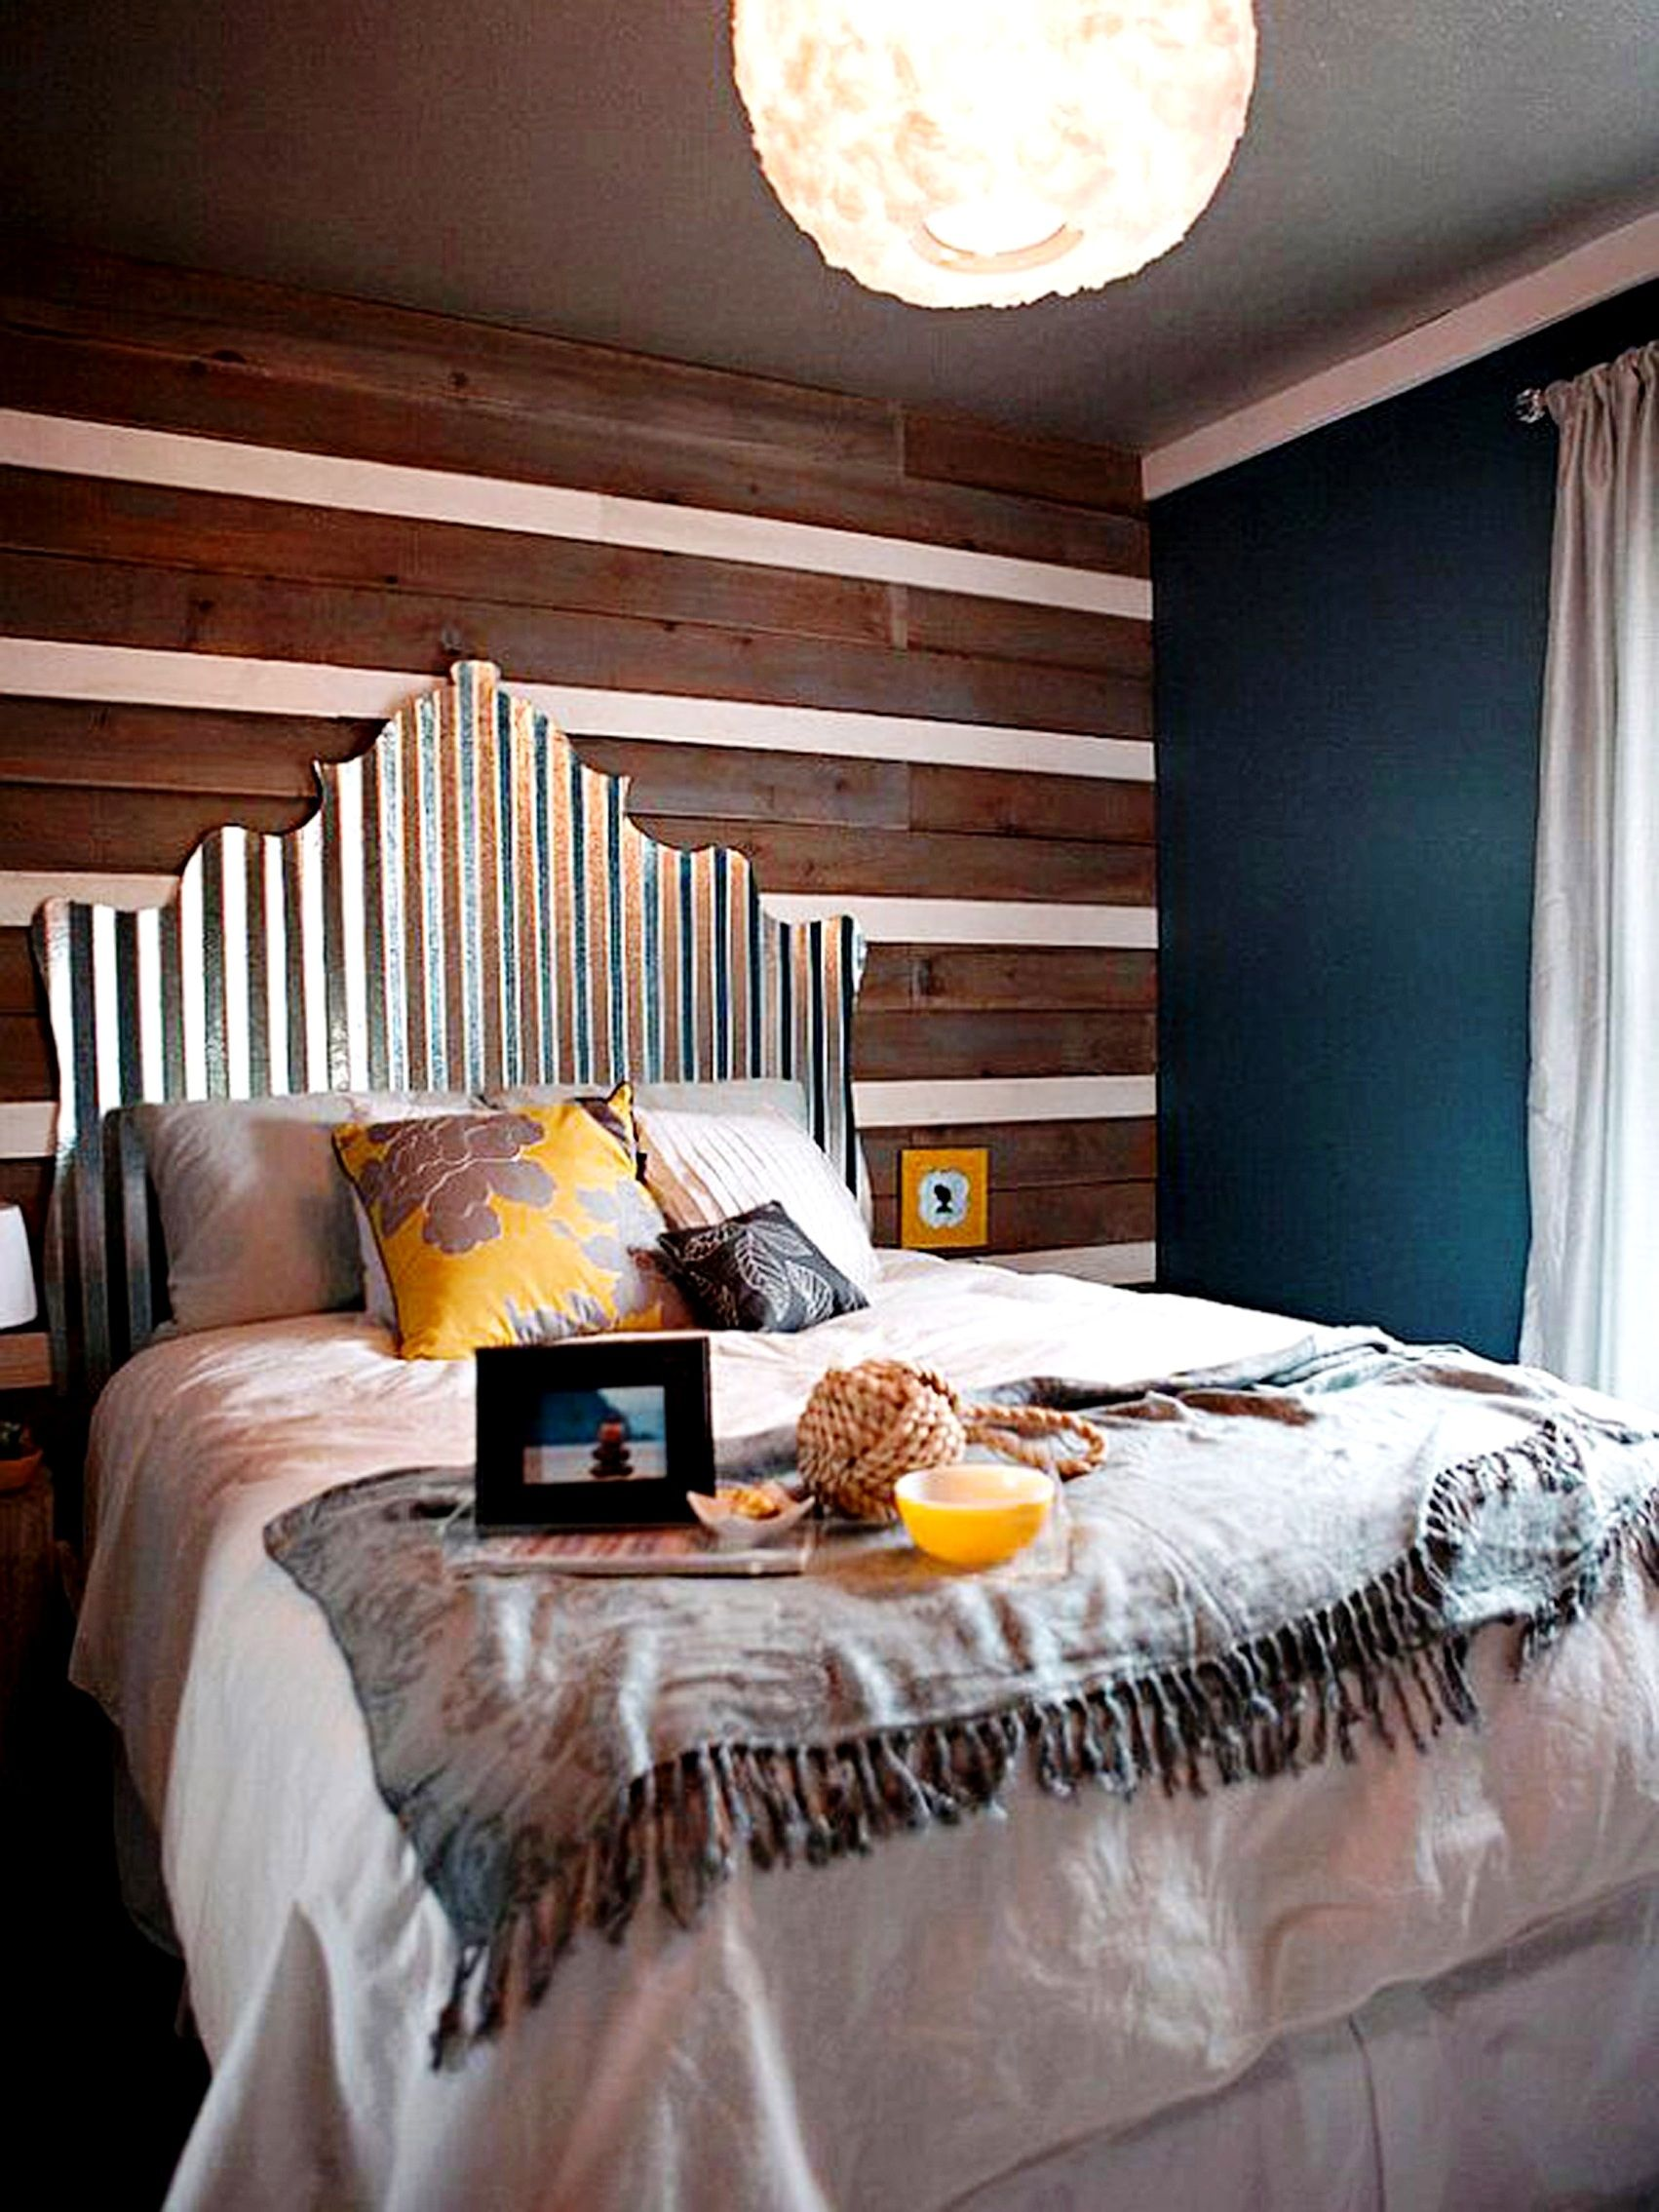 paint colors small bedrooms images%0A Accent Wall Color For Small Bedroom